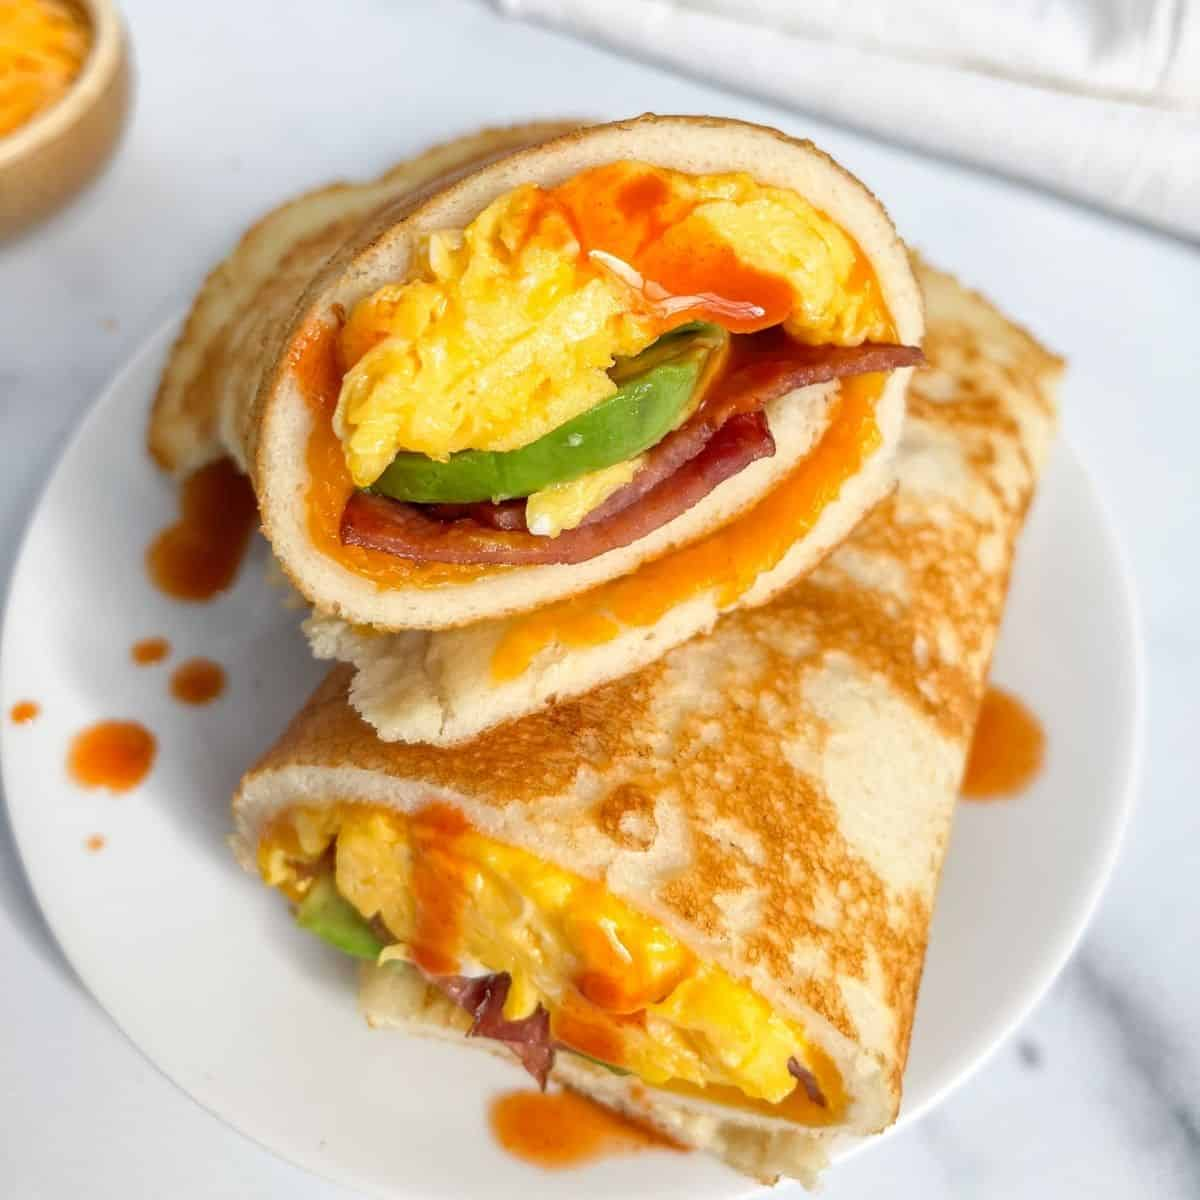 Healthy bacon, egg and cheese pancake burrito with avocado. Such an easy, tasty and fun breakfast sandwich made with clean ingredients. Recipe by Healthful Blondie.